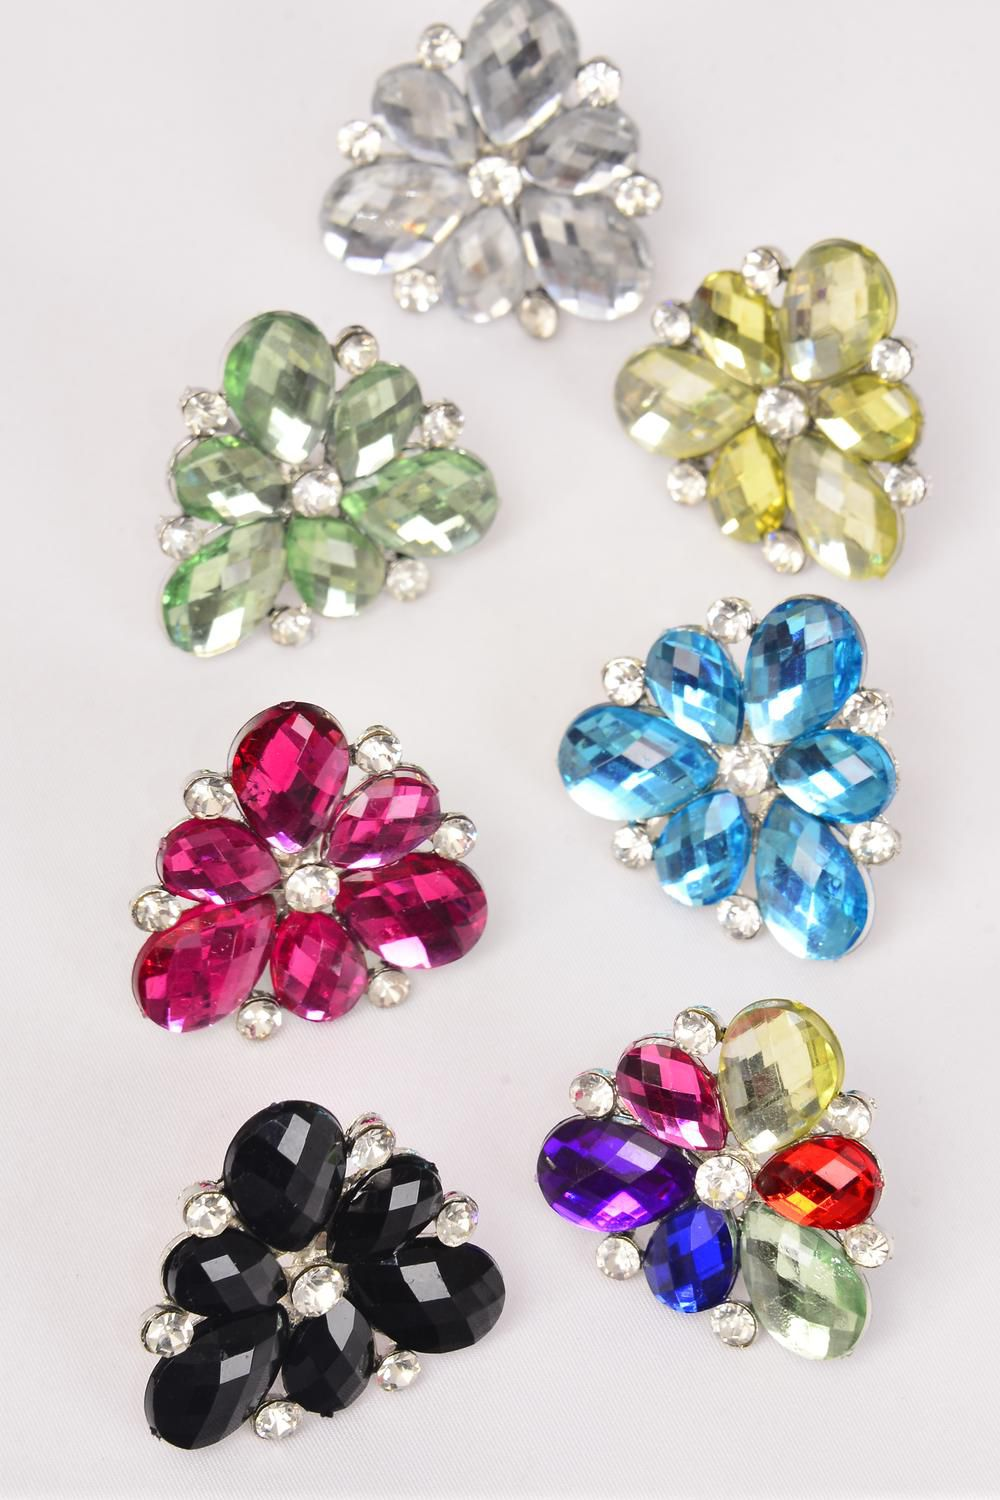 "Rings Acrylic Flower Color Rhinestones/DZ **Adjustable** Flower-1.5"" Wide,2 Black,2 Clear,2 Blue,2 Fuchsia,2 Multi,1 Lime,1 Yellow,7 Color Asst"